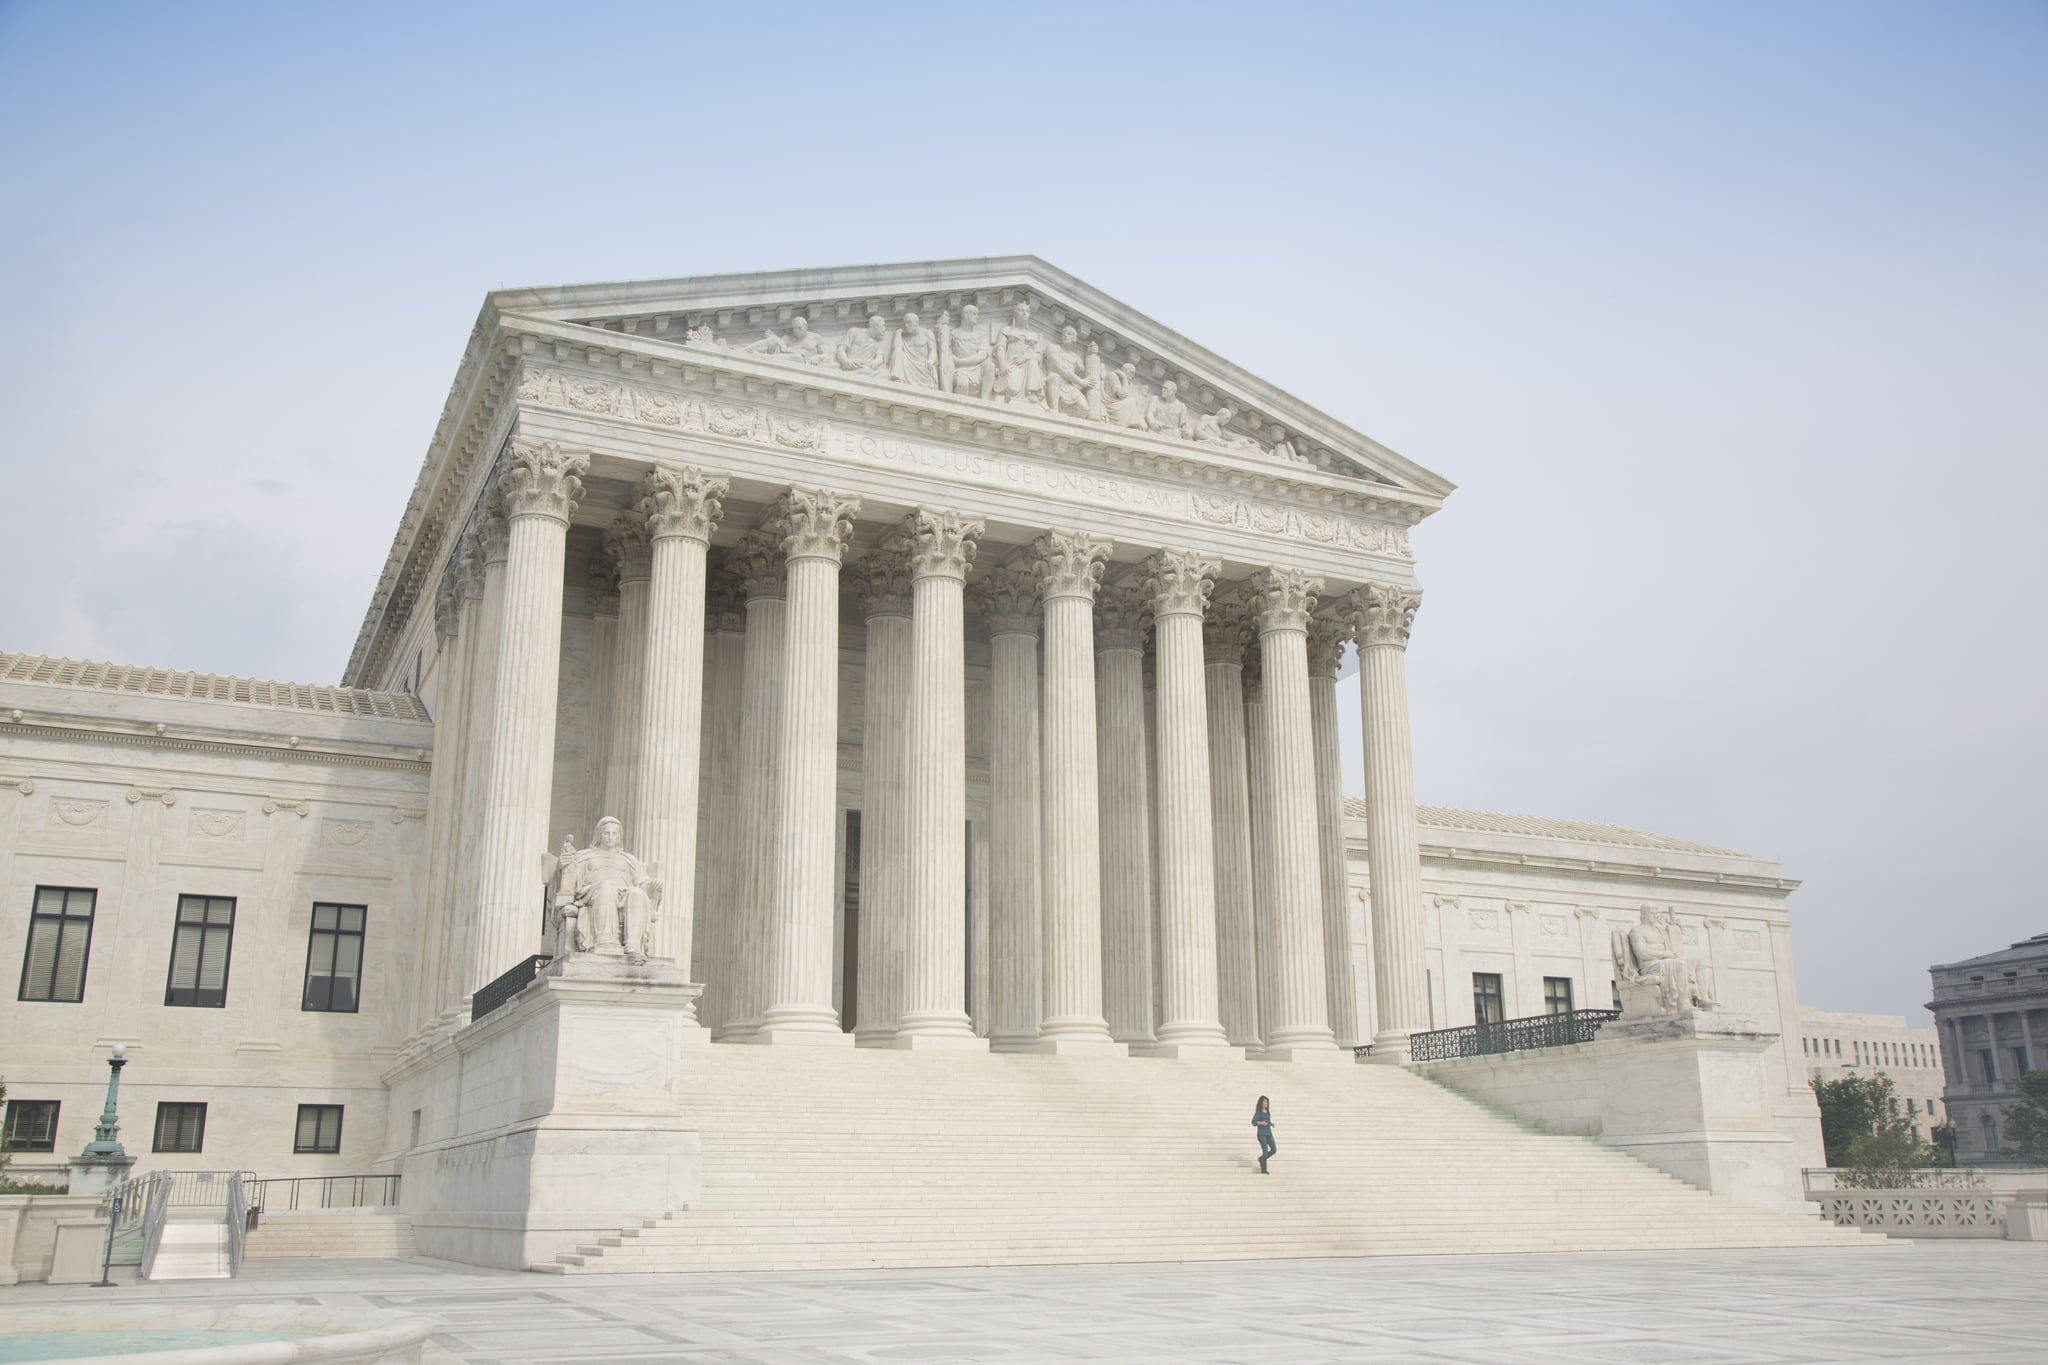 The Supreme court of United States of America.